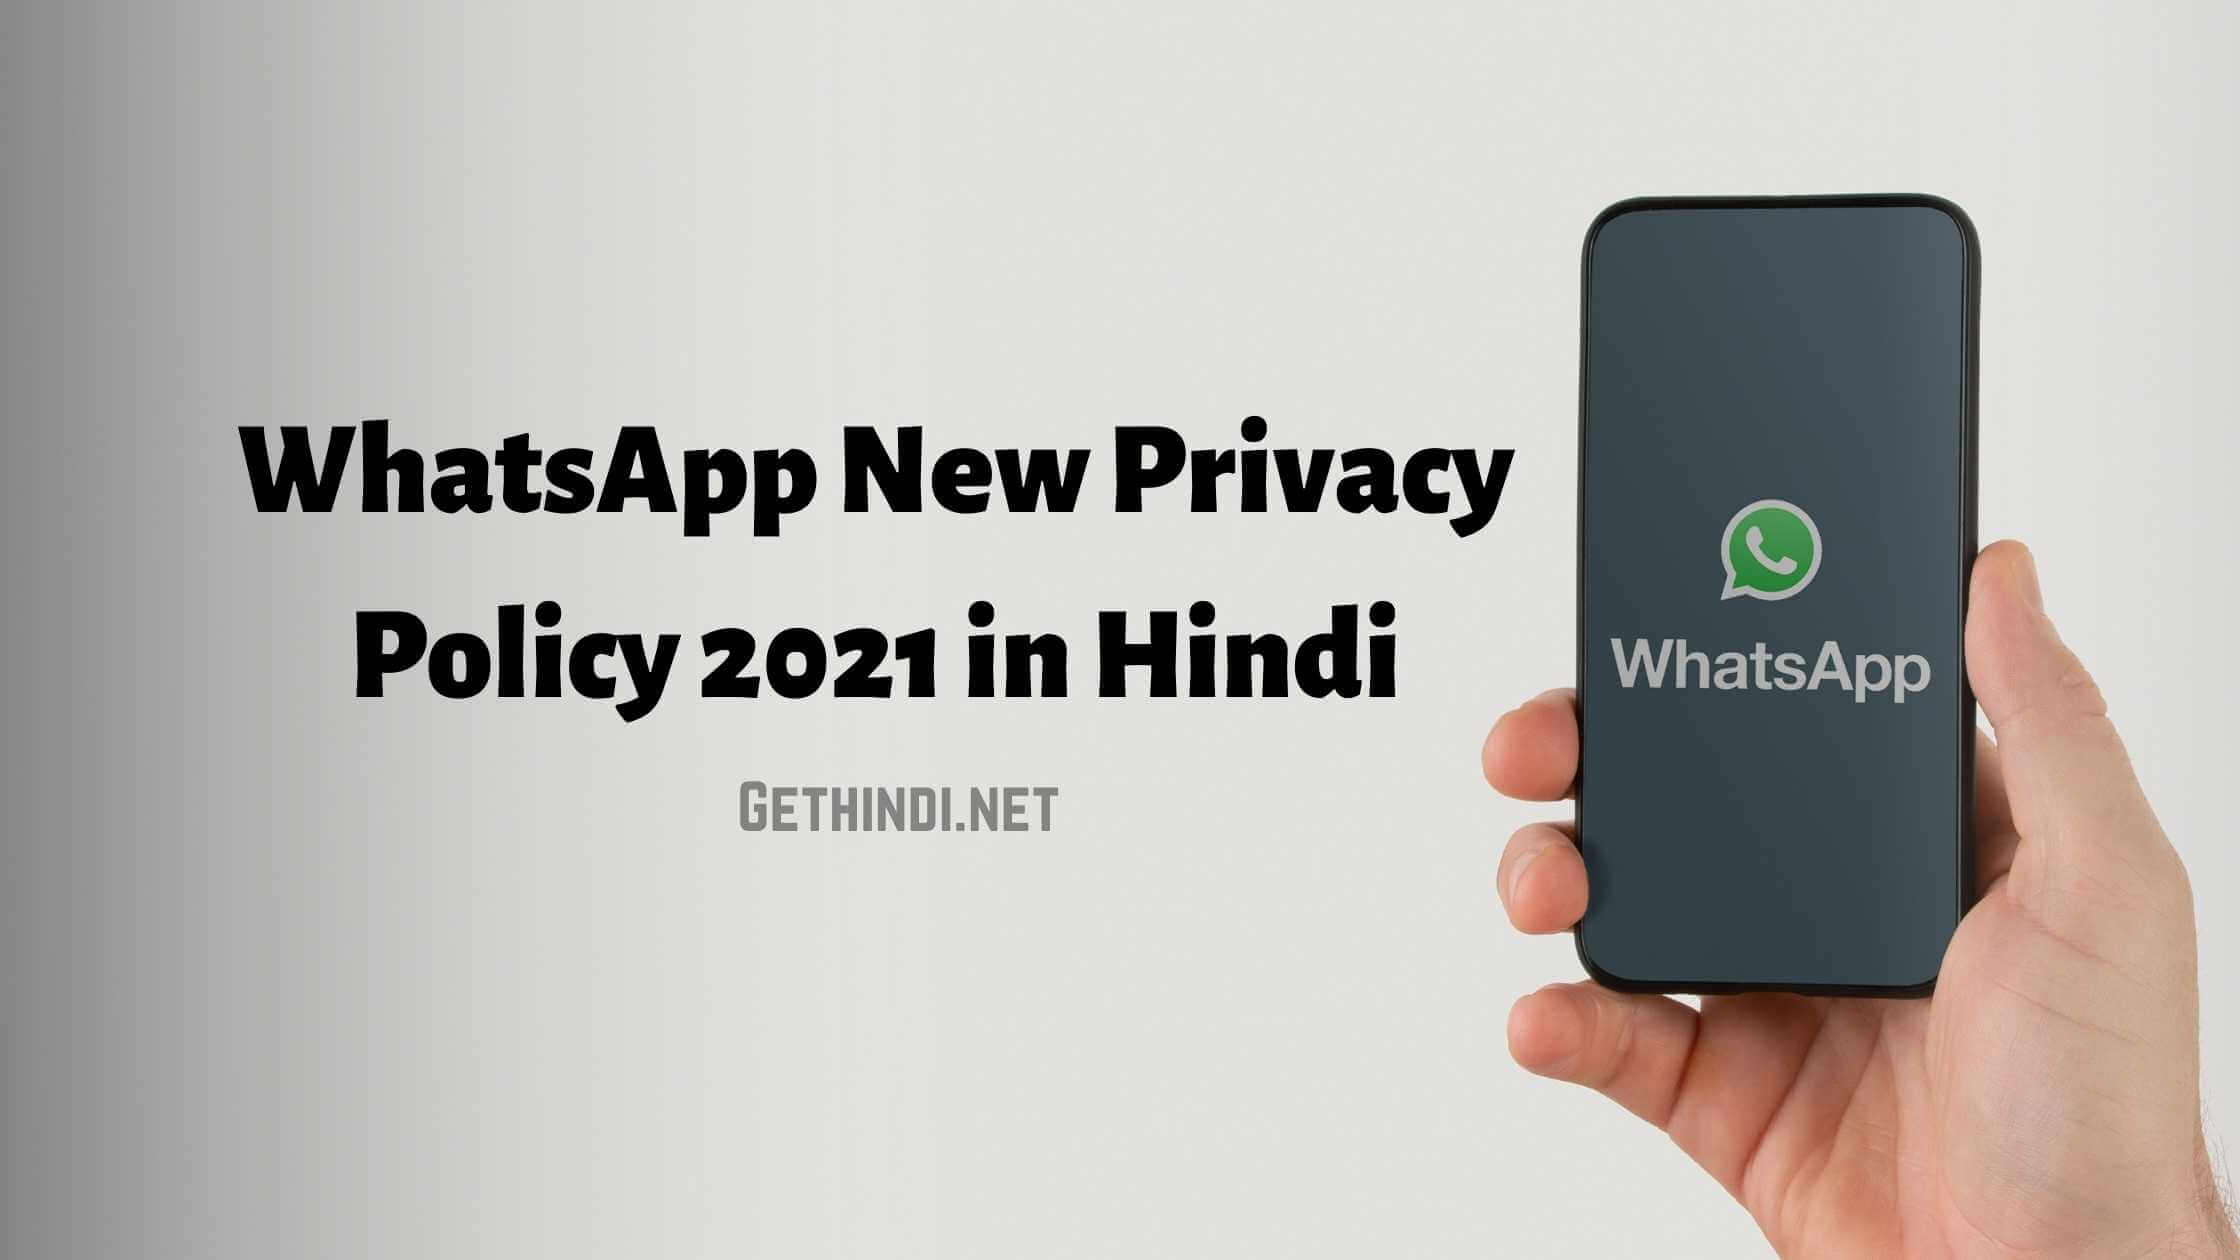 WhatsApp new privacy policy 2021 in Hindi (New Update)